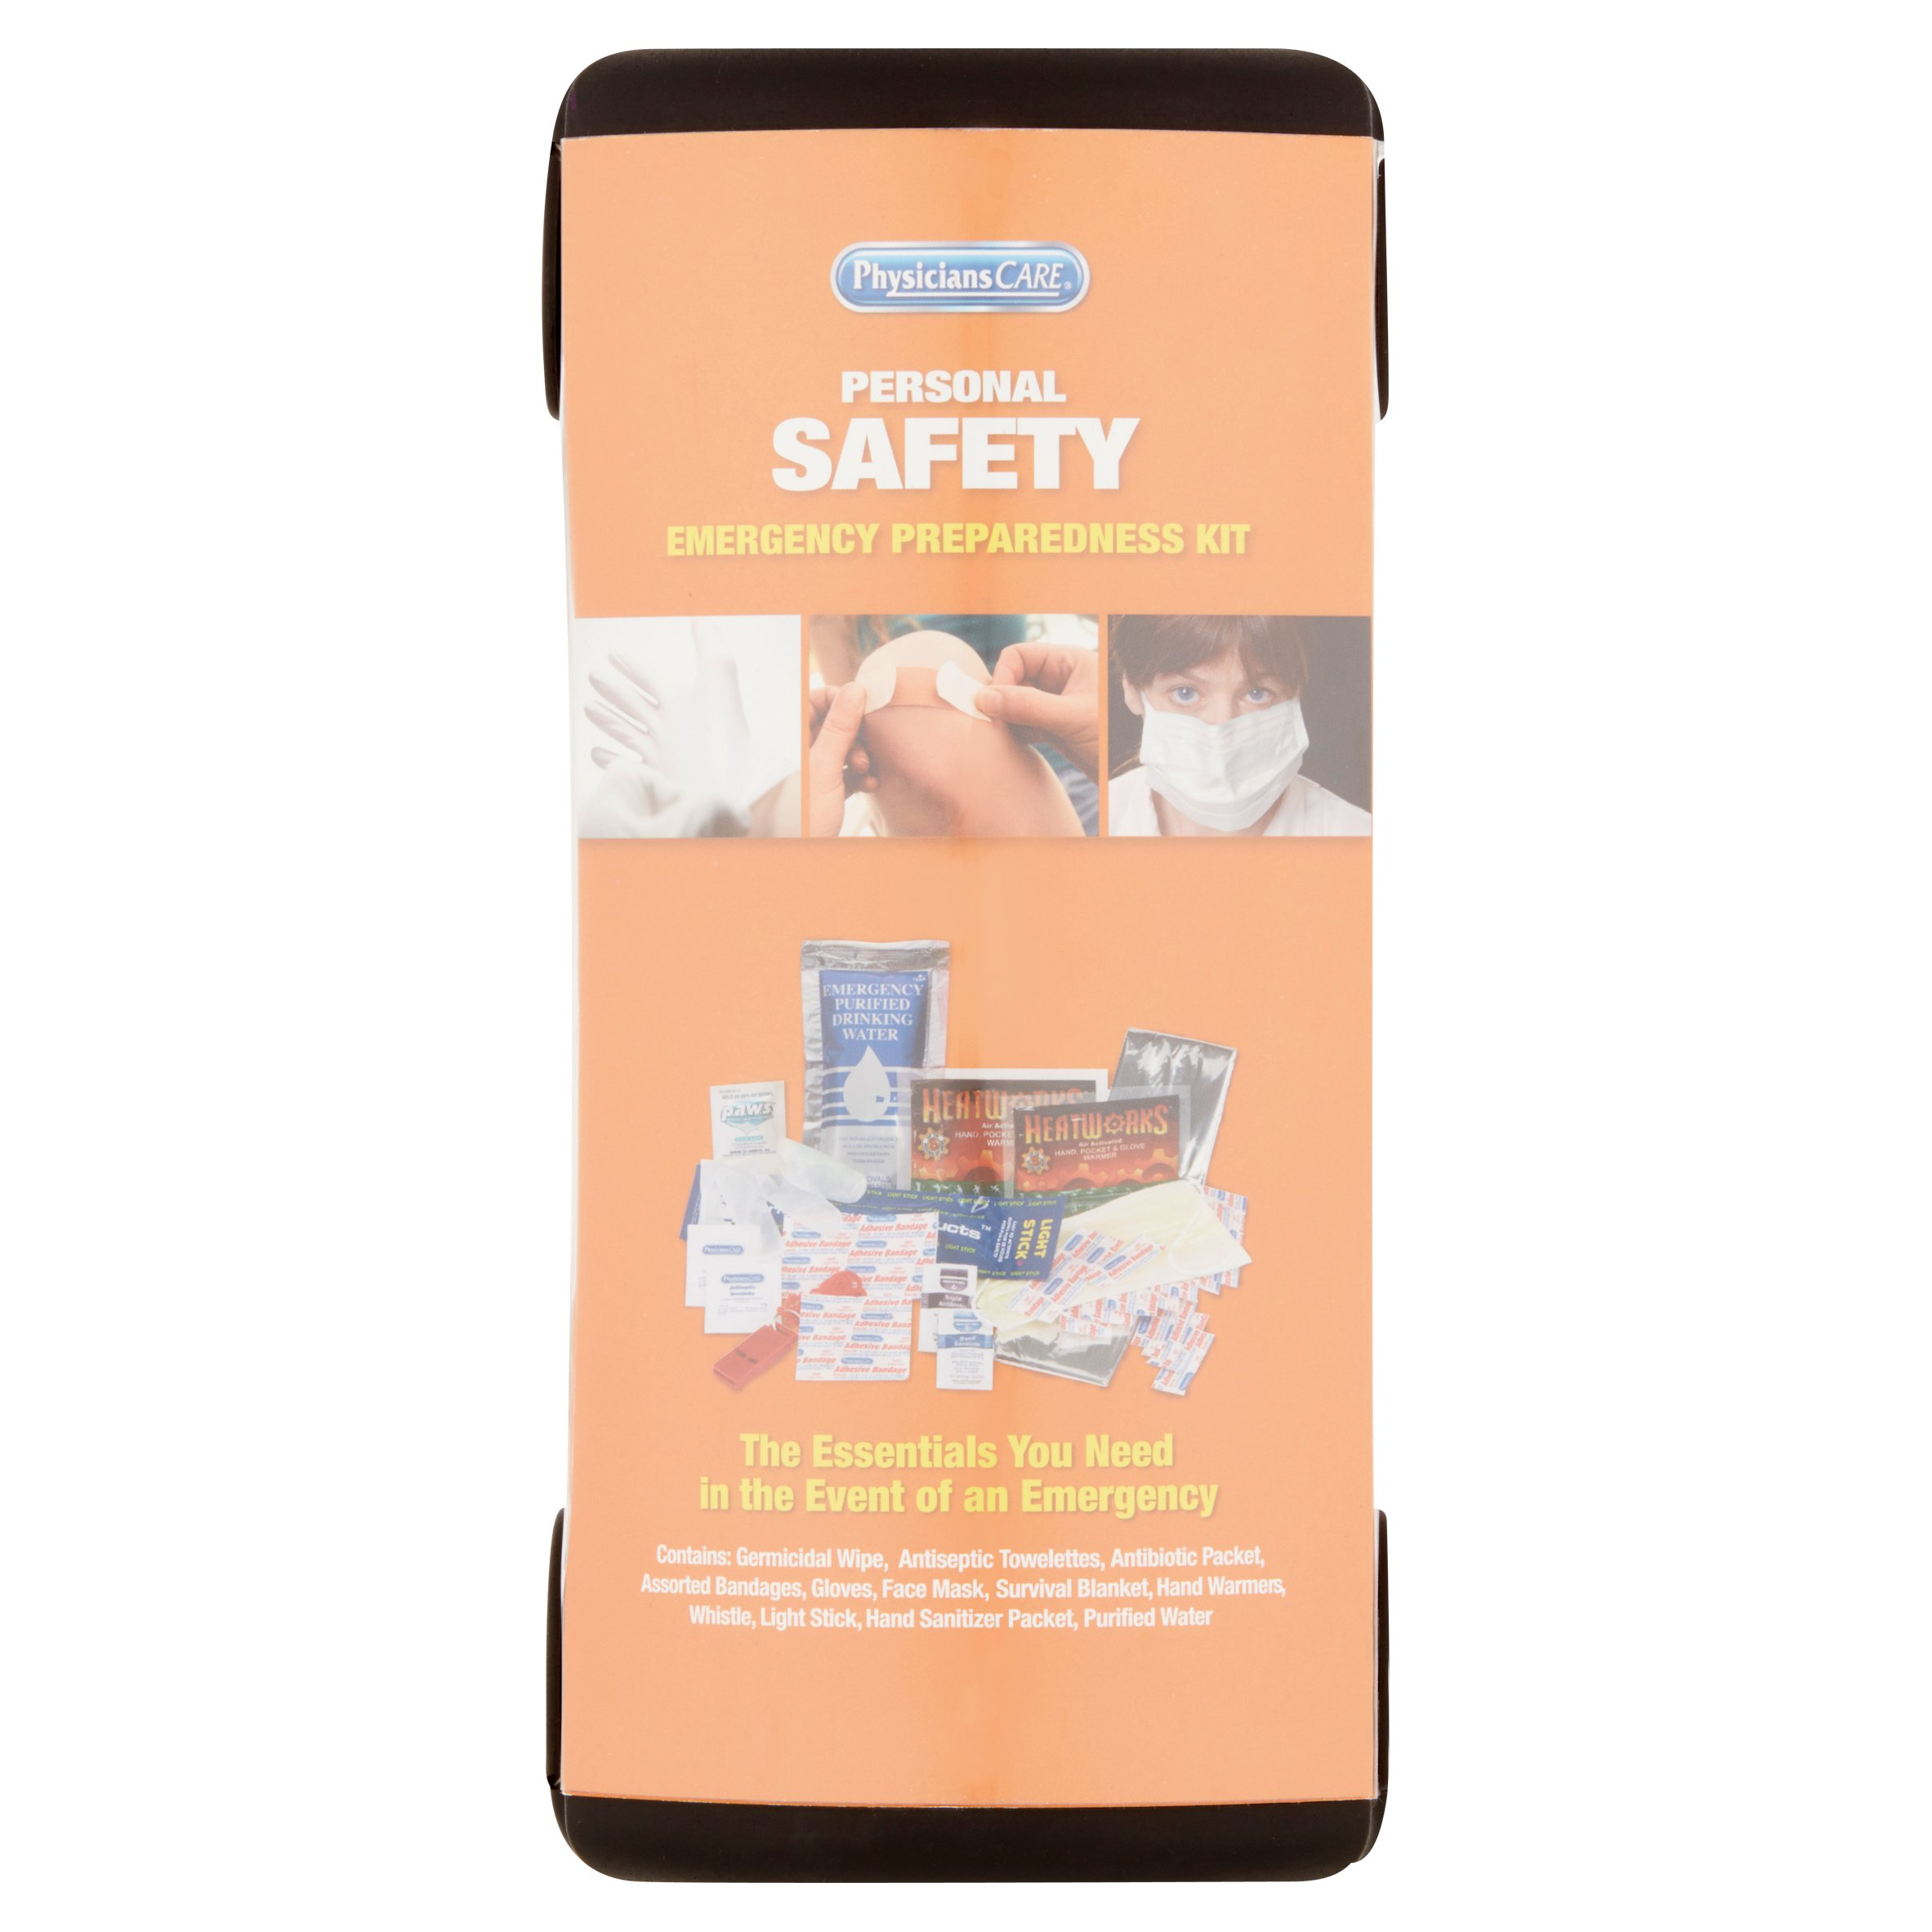 Physicians Care Personal Safety Emergency Preparedness Kit